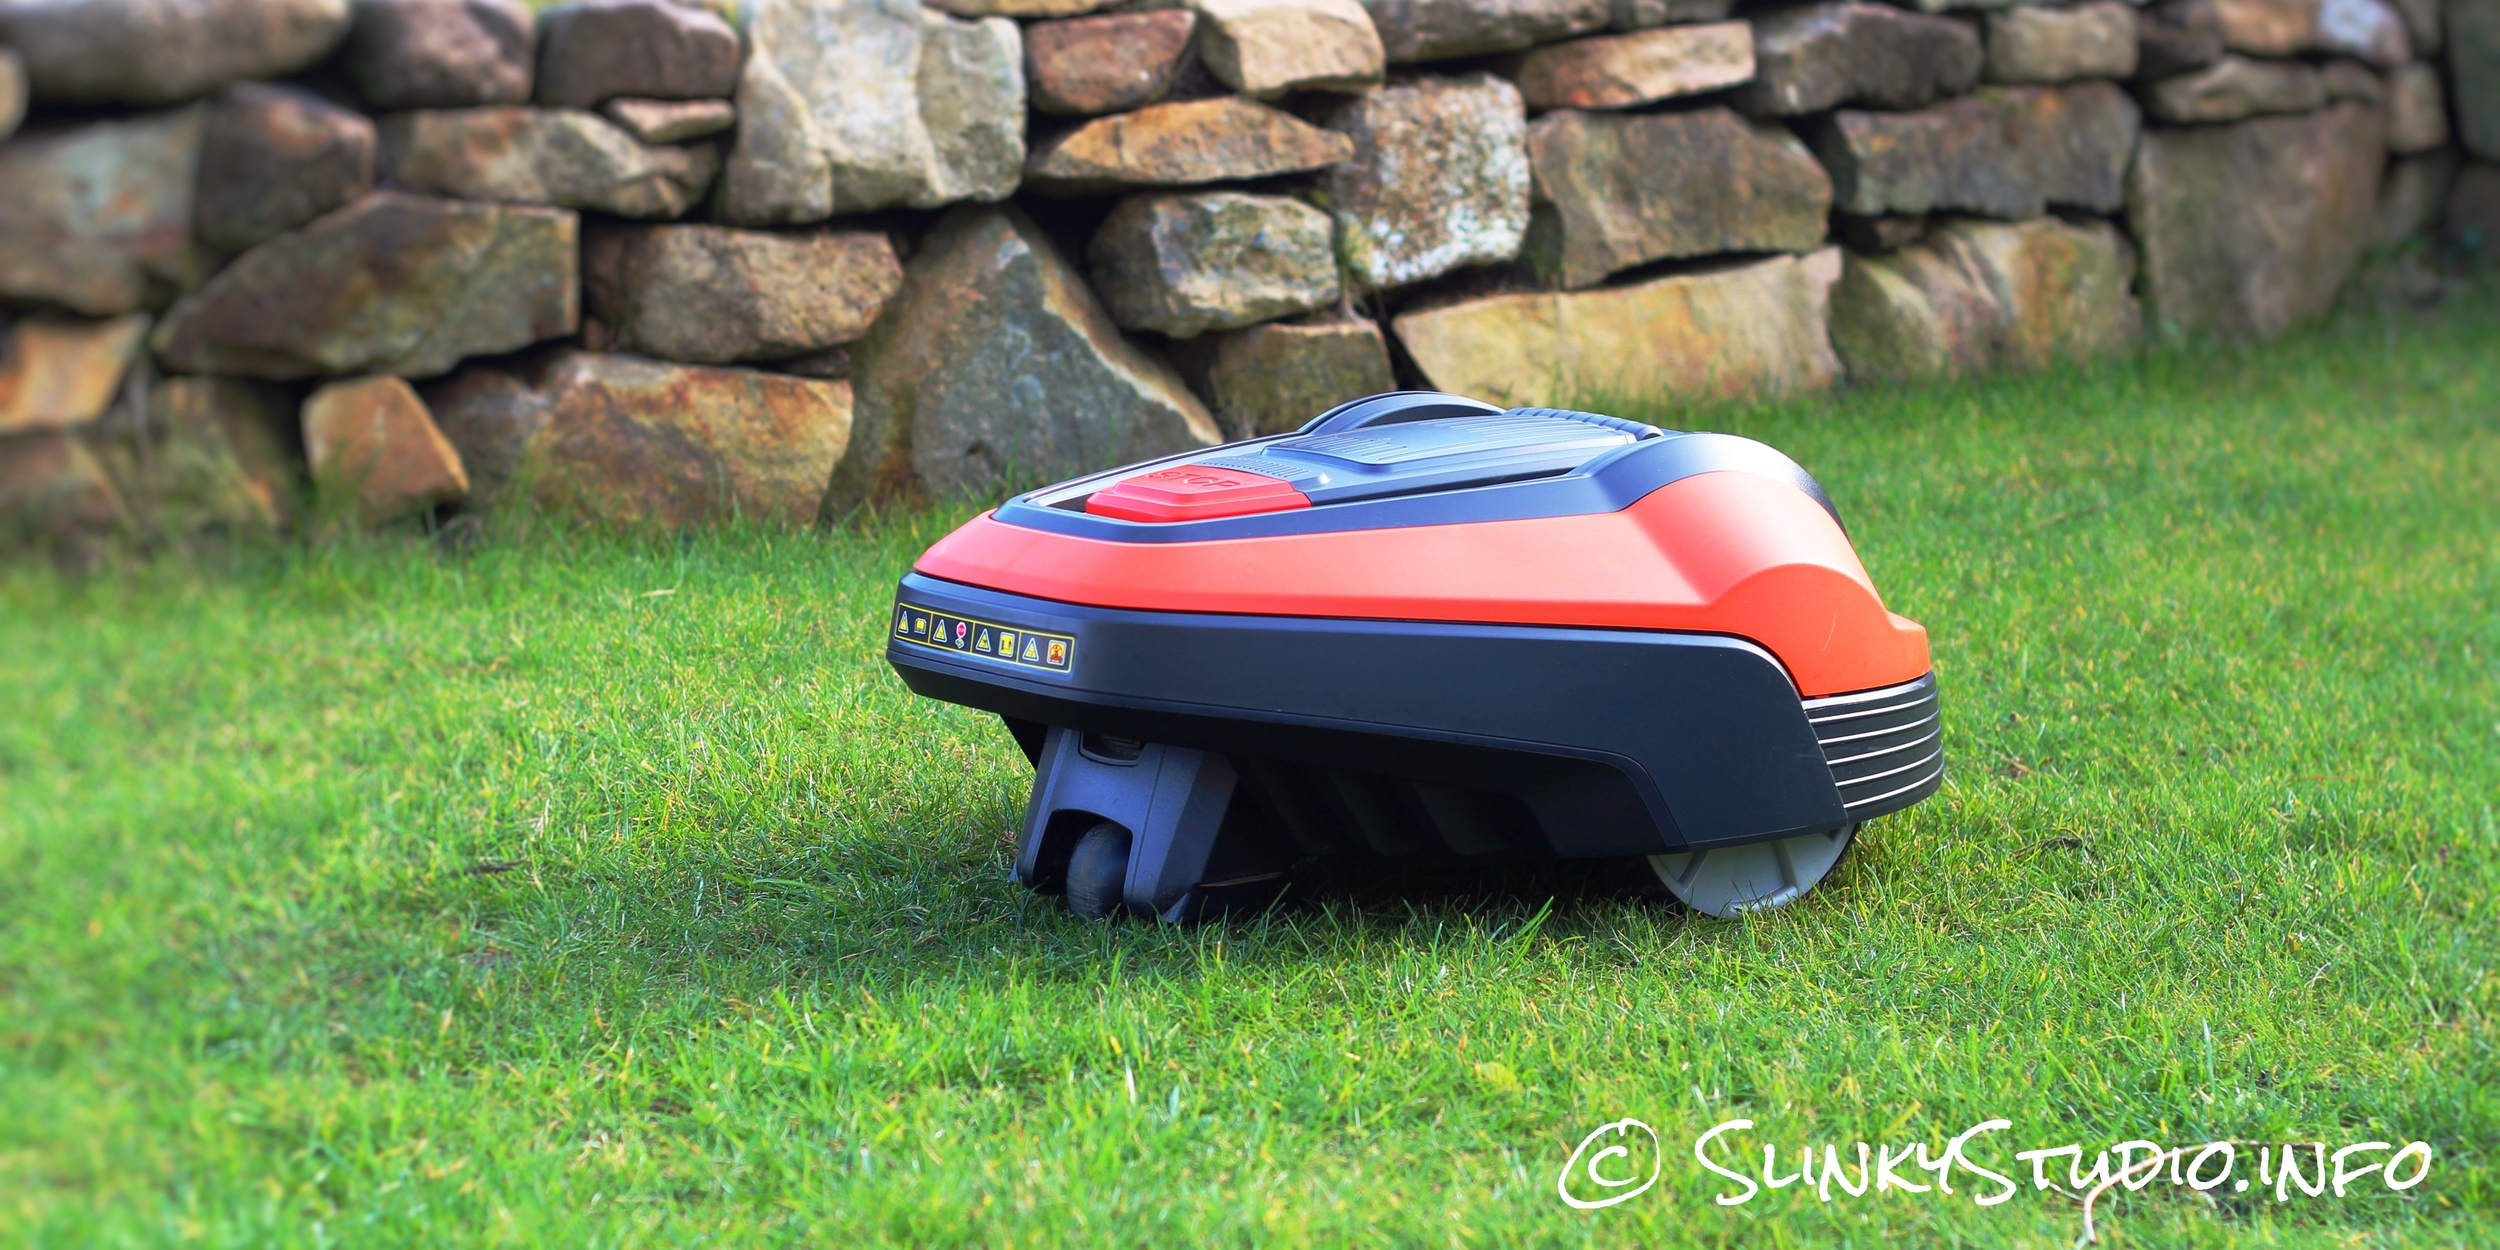 Flymo Robotic 1200R Lawnmower Mowing Lawn Side View.jpg